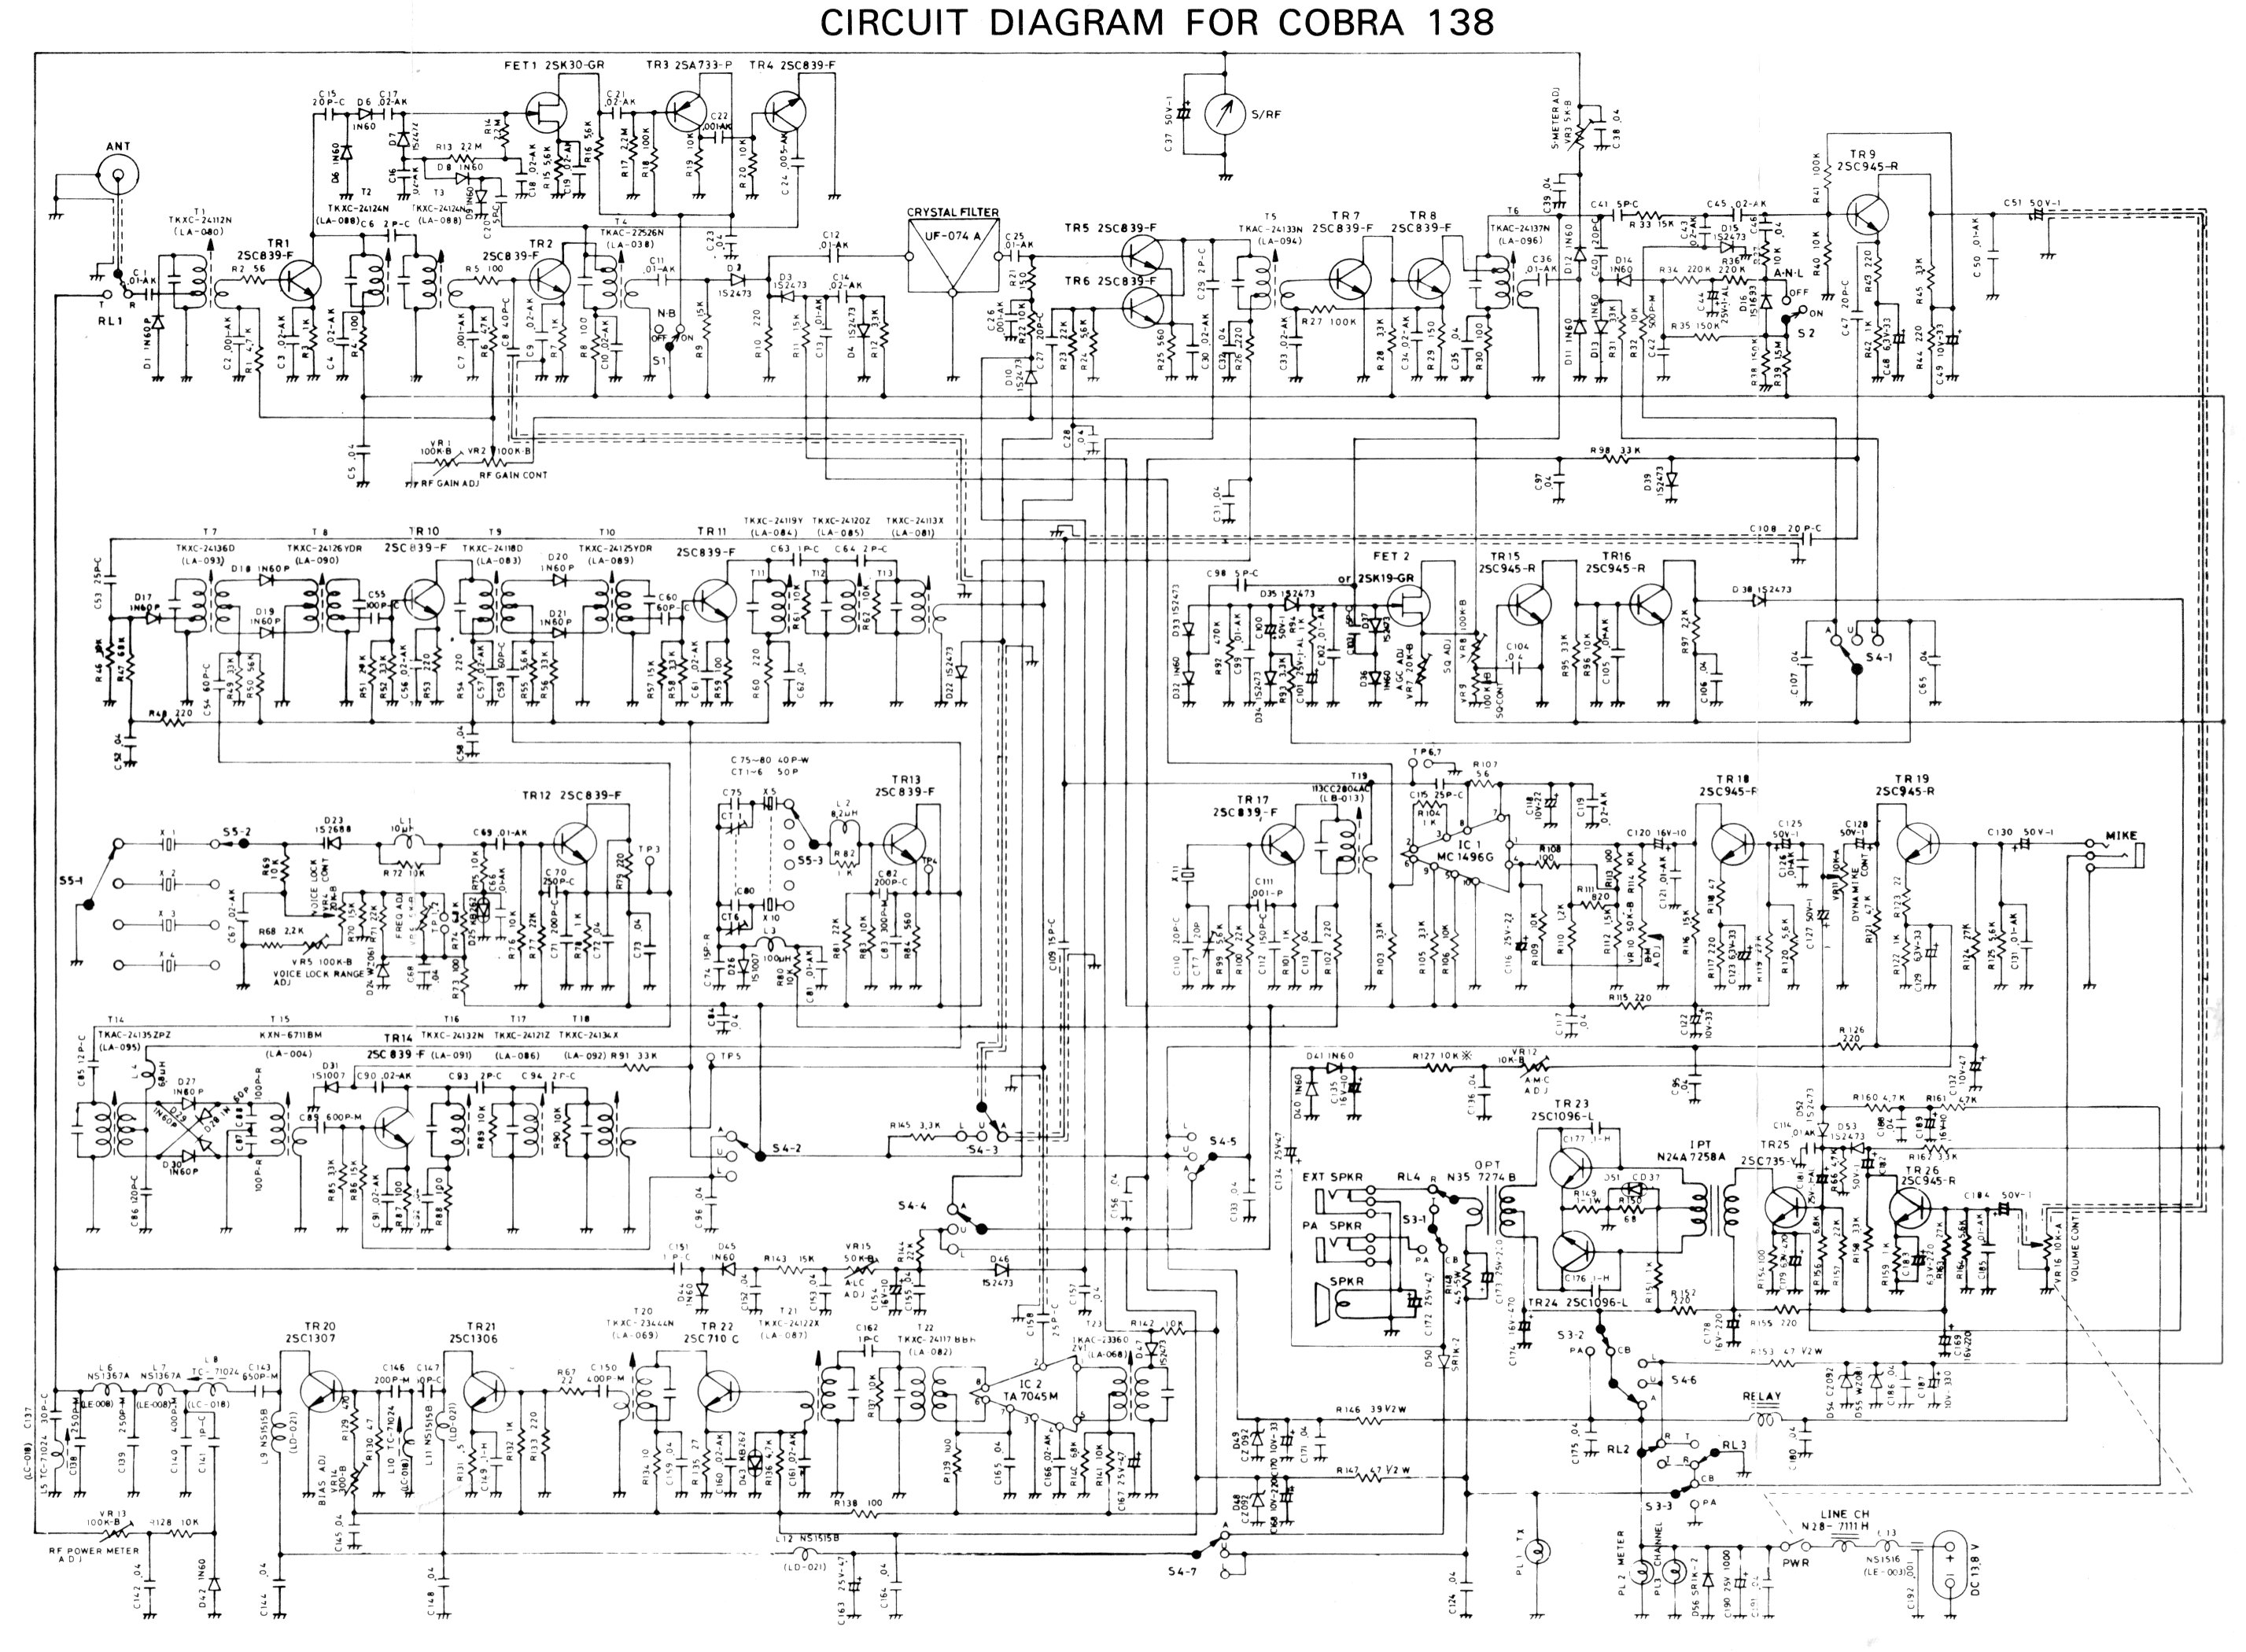 Super Star Cb Mic Wiring Diagram 5 Pin Services Microphone Cobra 138 Enthusiast Diagrams U2022 Rh Rasalibre Co 6